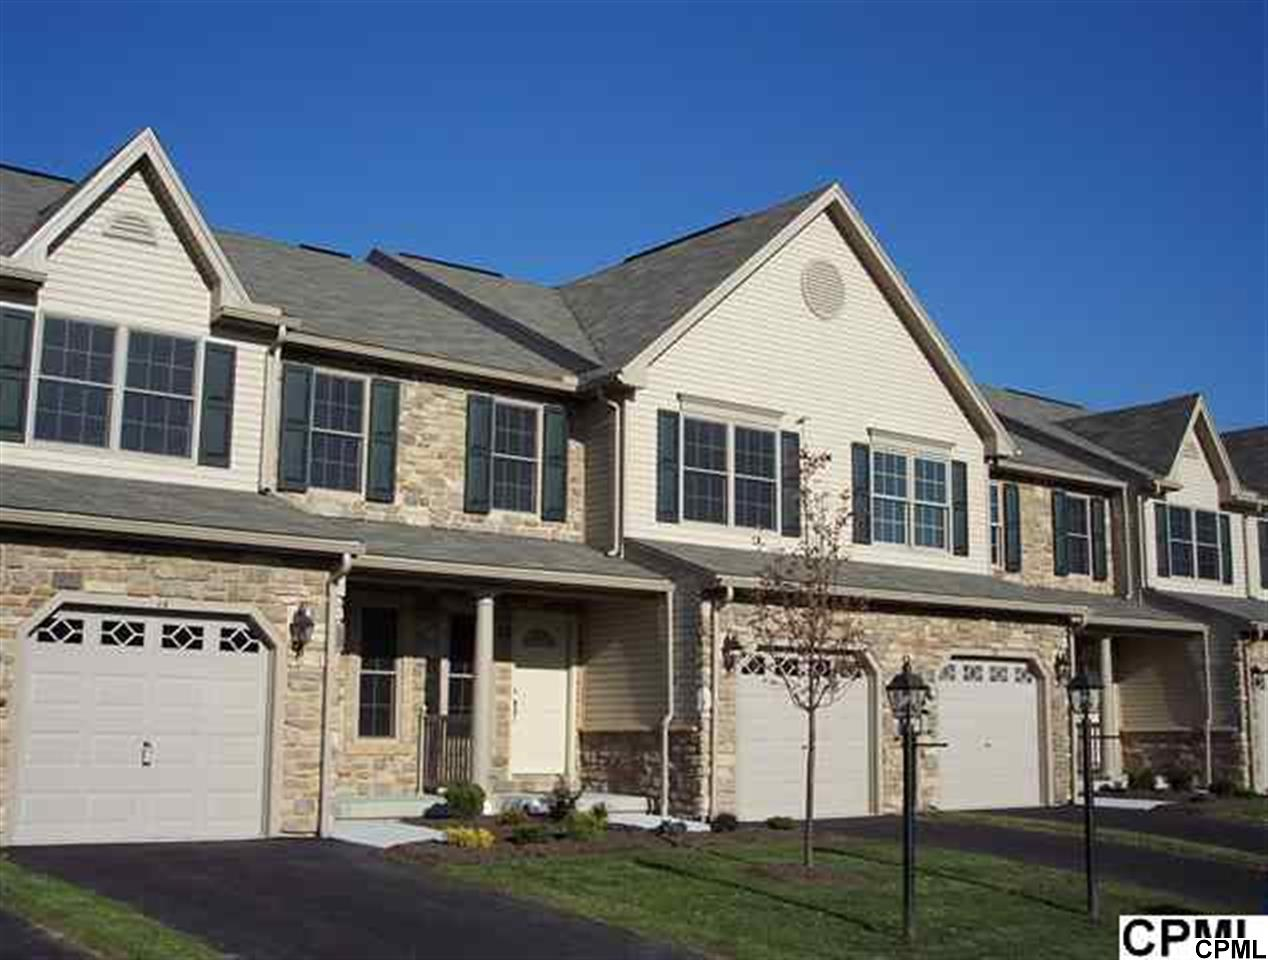 Rental Homes for Rent, ListingId:26886361, location: 18 Nottingham Drive Mechanicsburg 17050